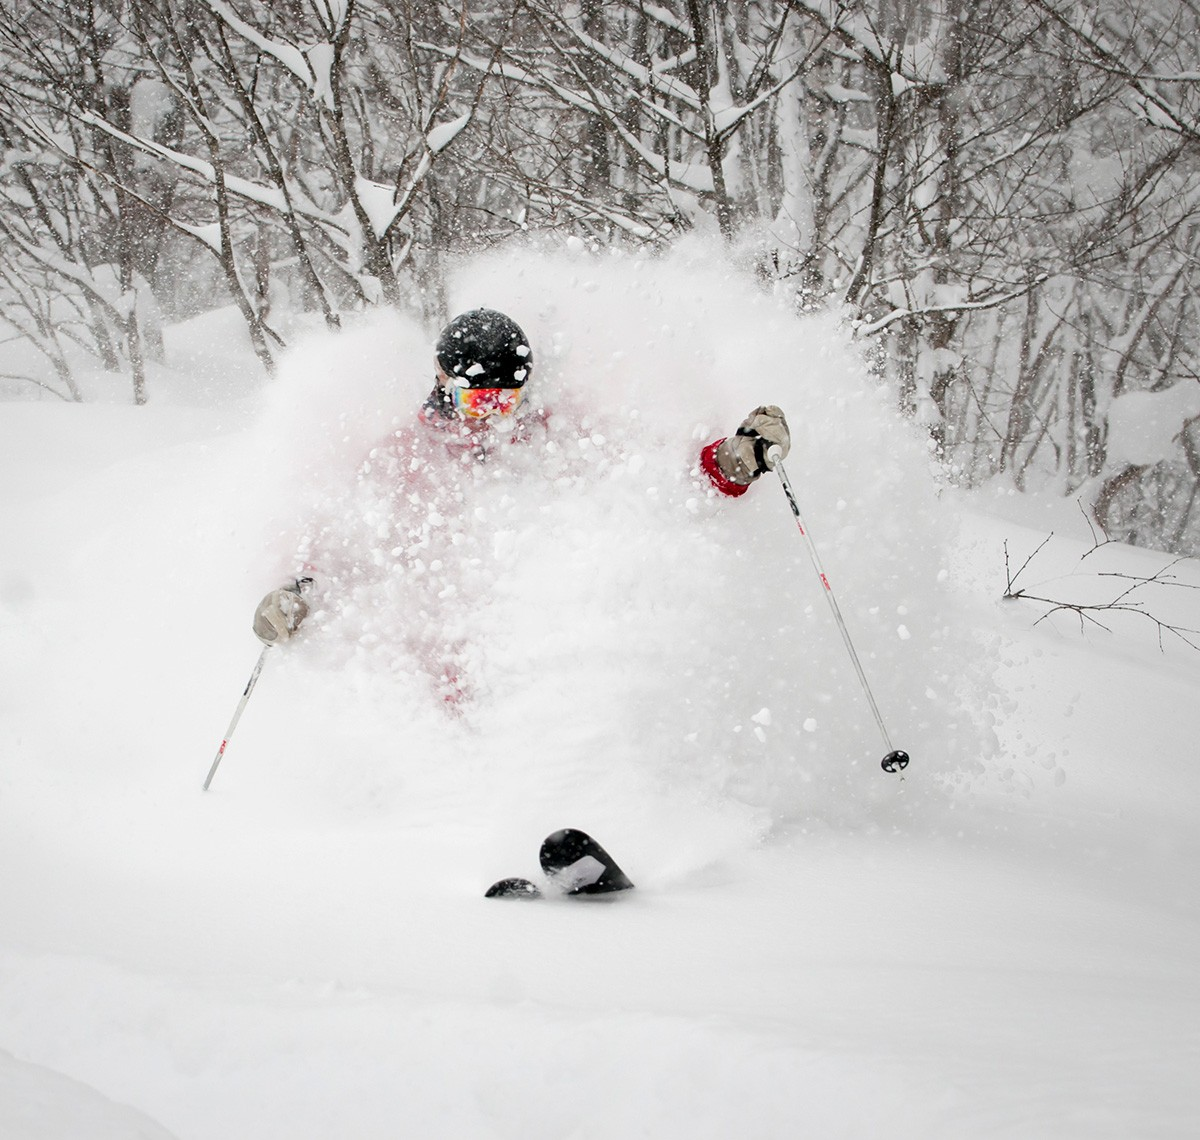 SSS-Level-1200w-x-1140h Snowsports Overview